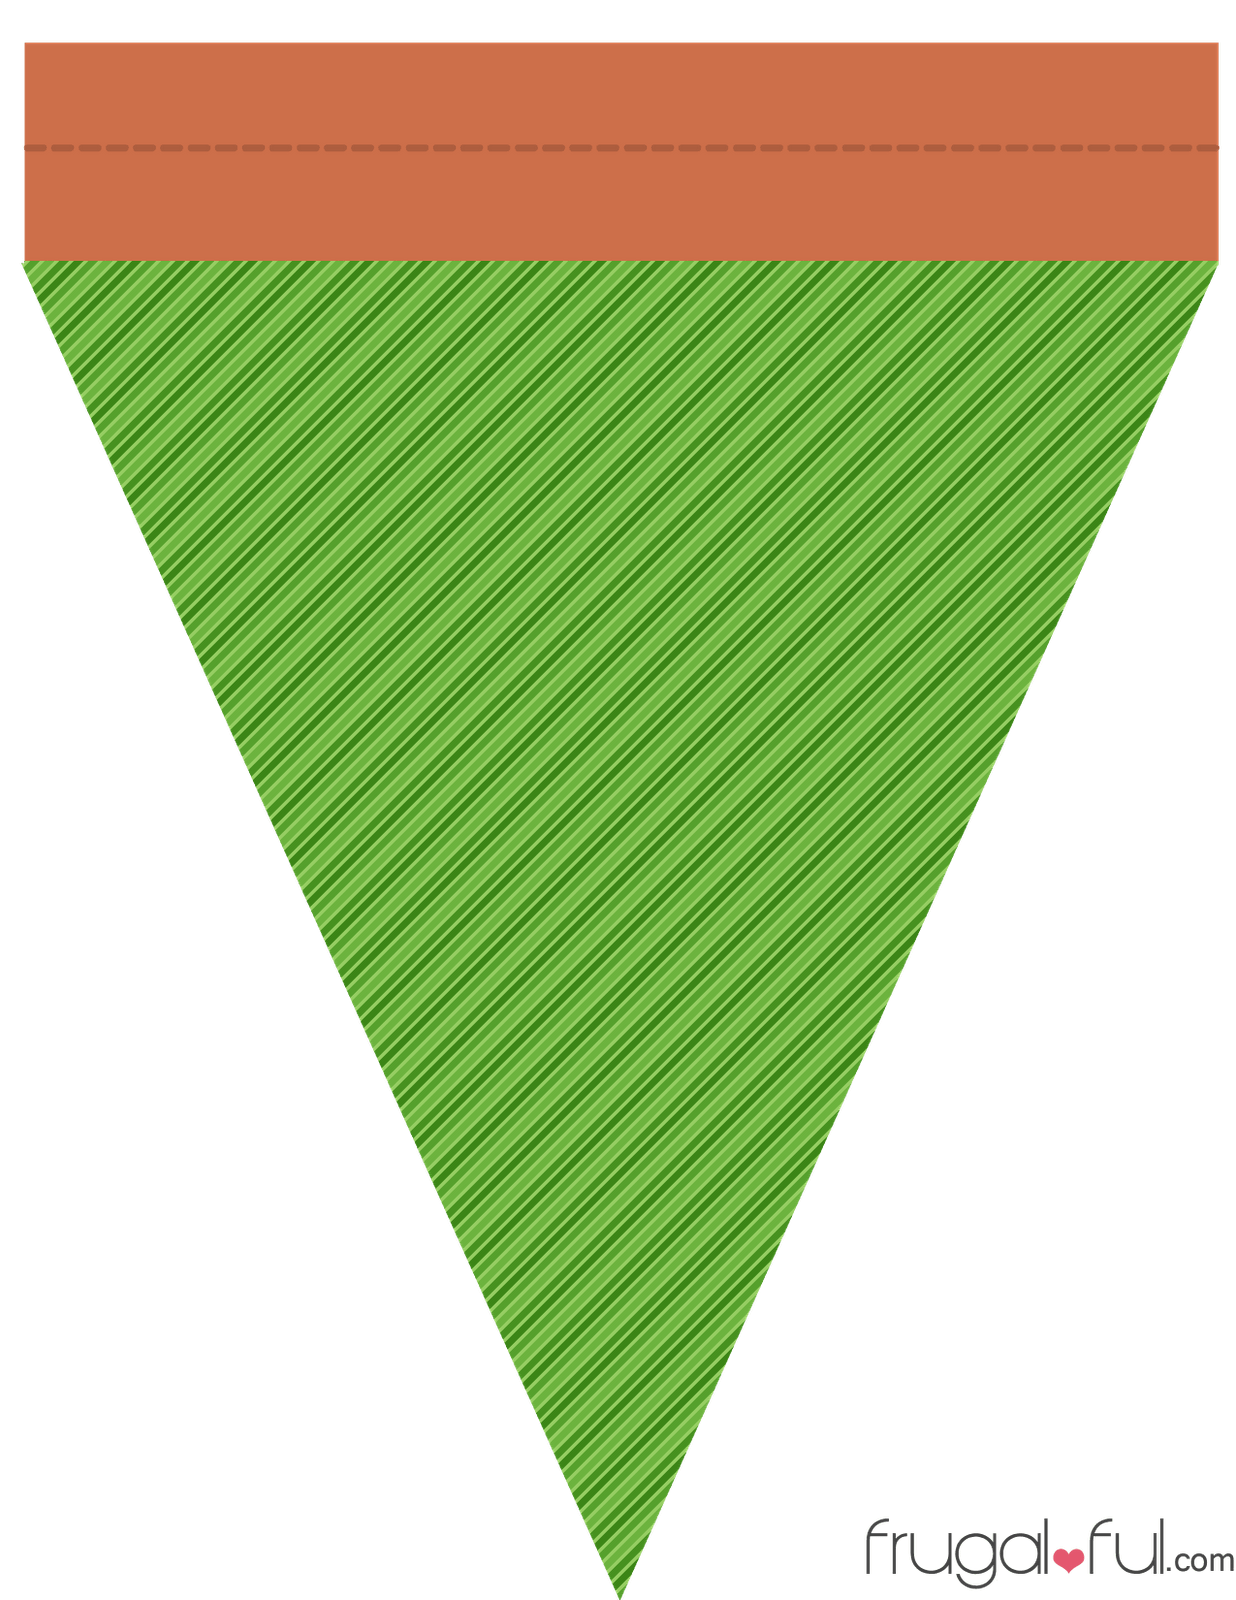 Diy free printable halloween triangle banner template source 4bpspot maxwellsz